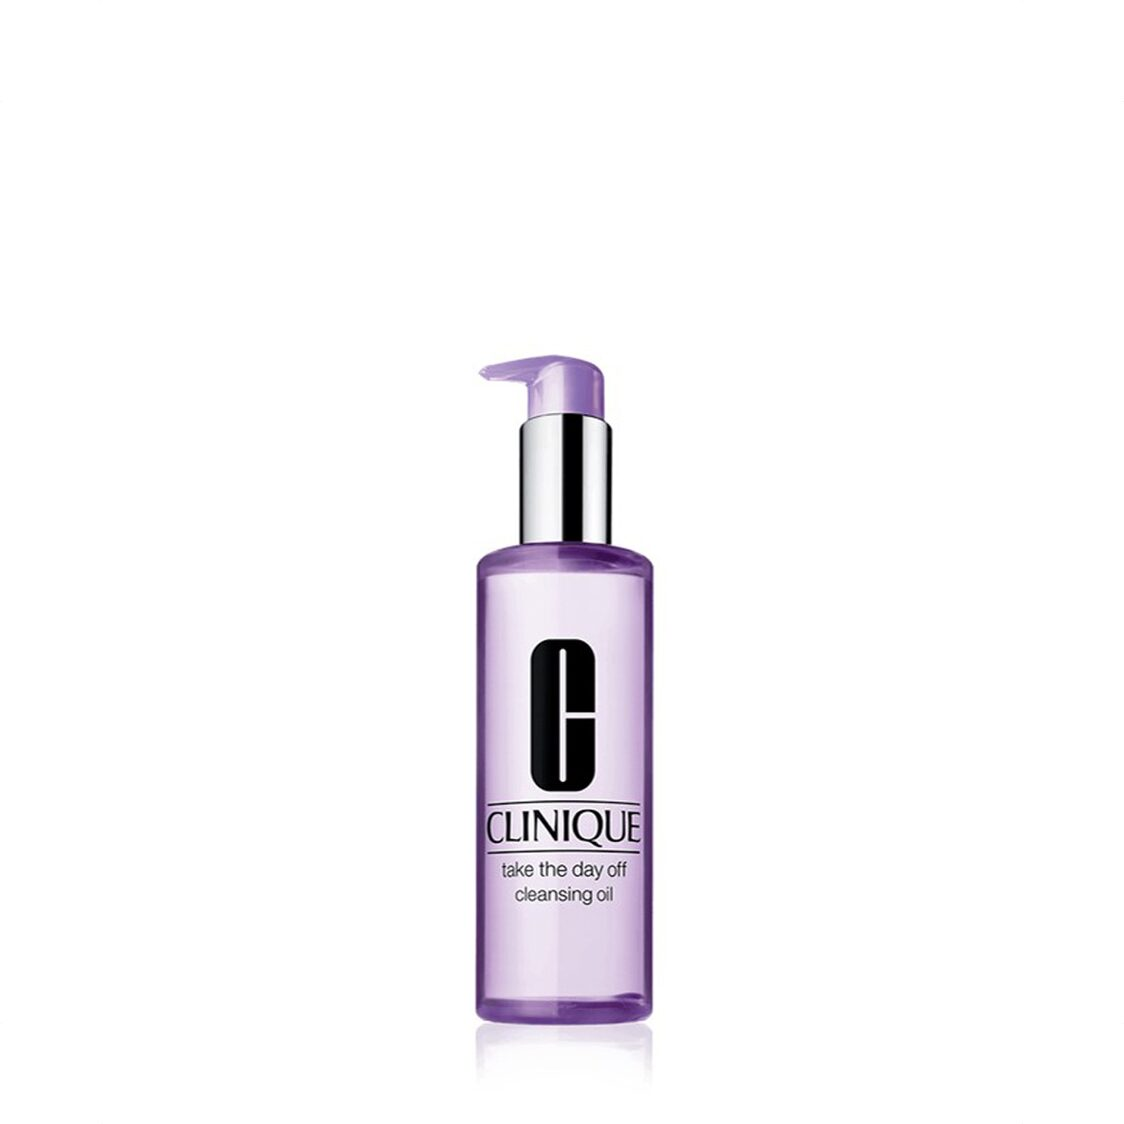 Clinique Take The Day Off Cleansing Oil 200ml